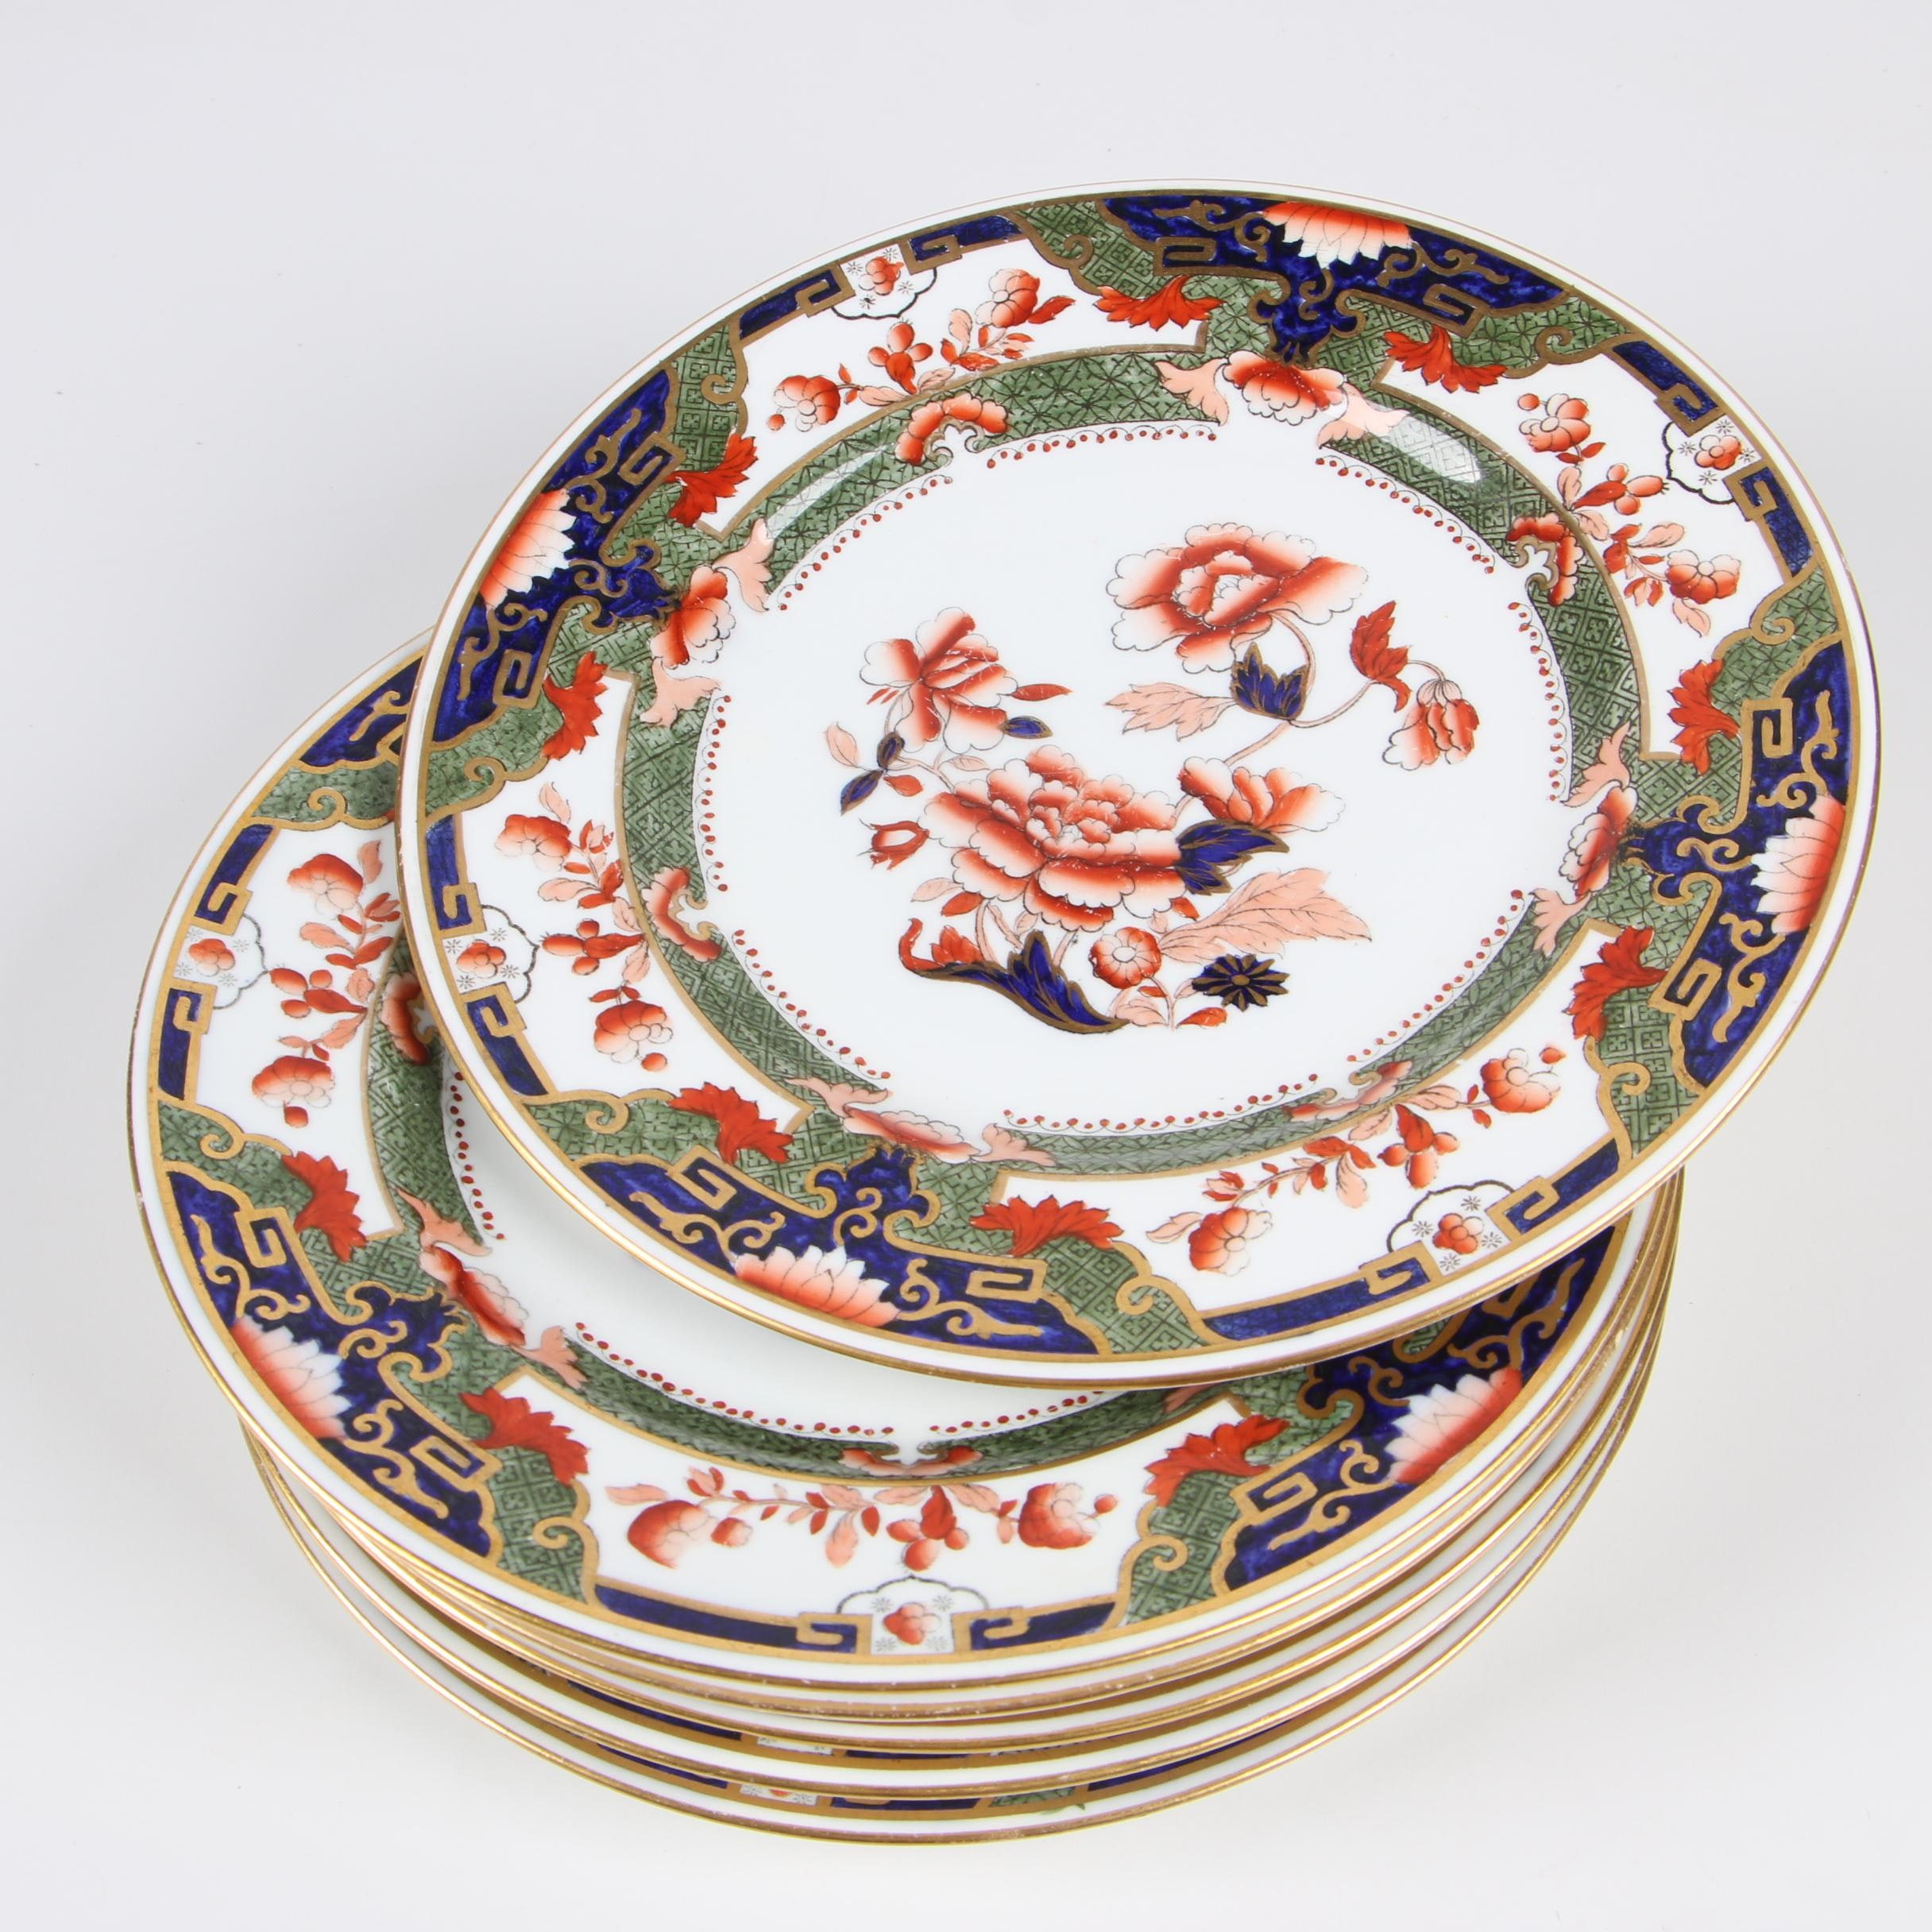 Copeland Spode Imari Porcelain Plates, Early 20th Century